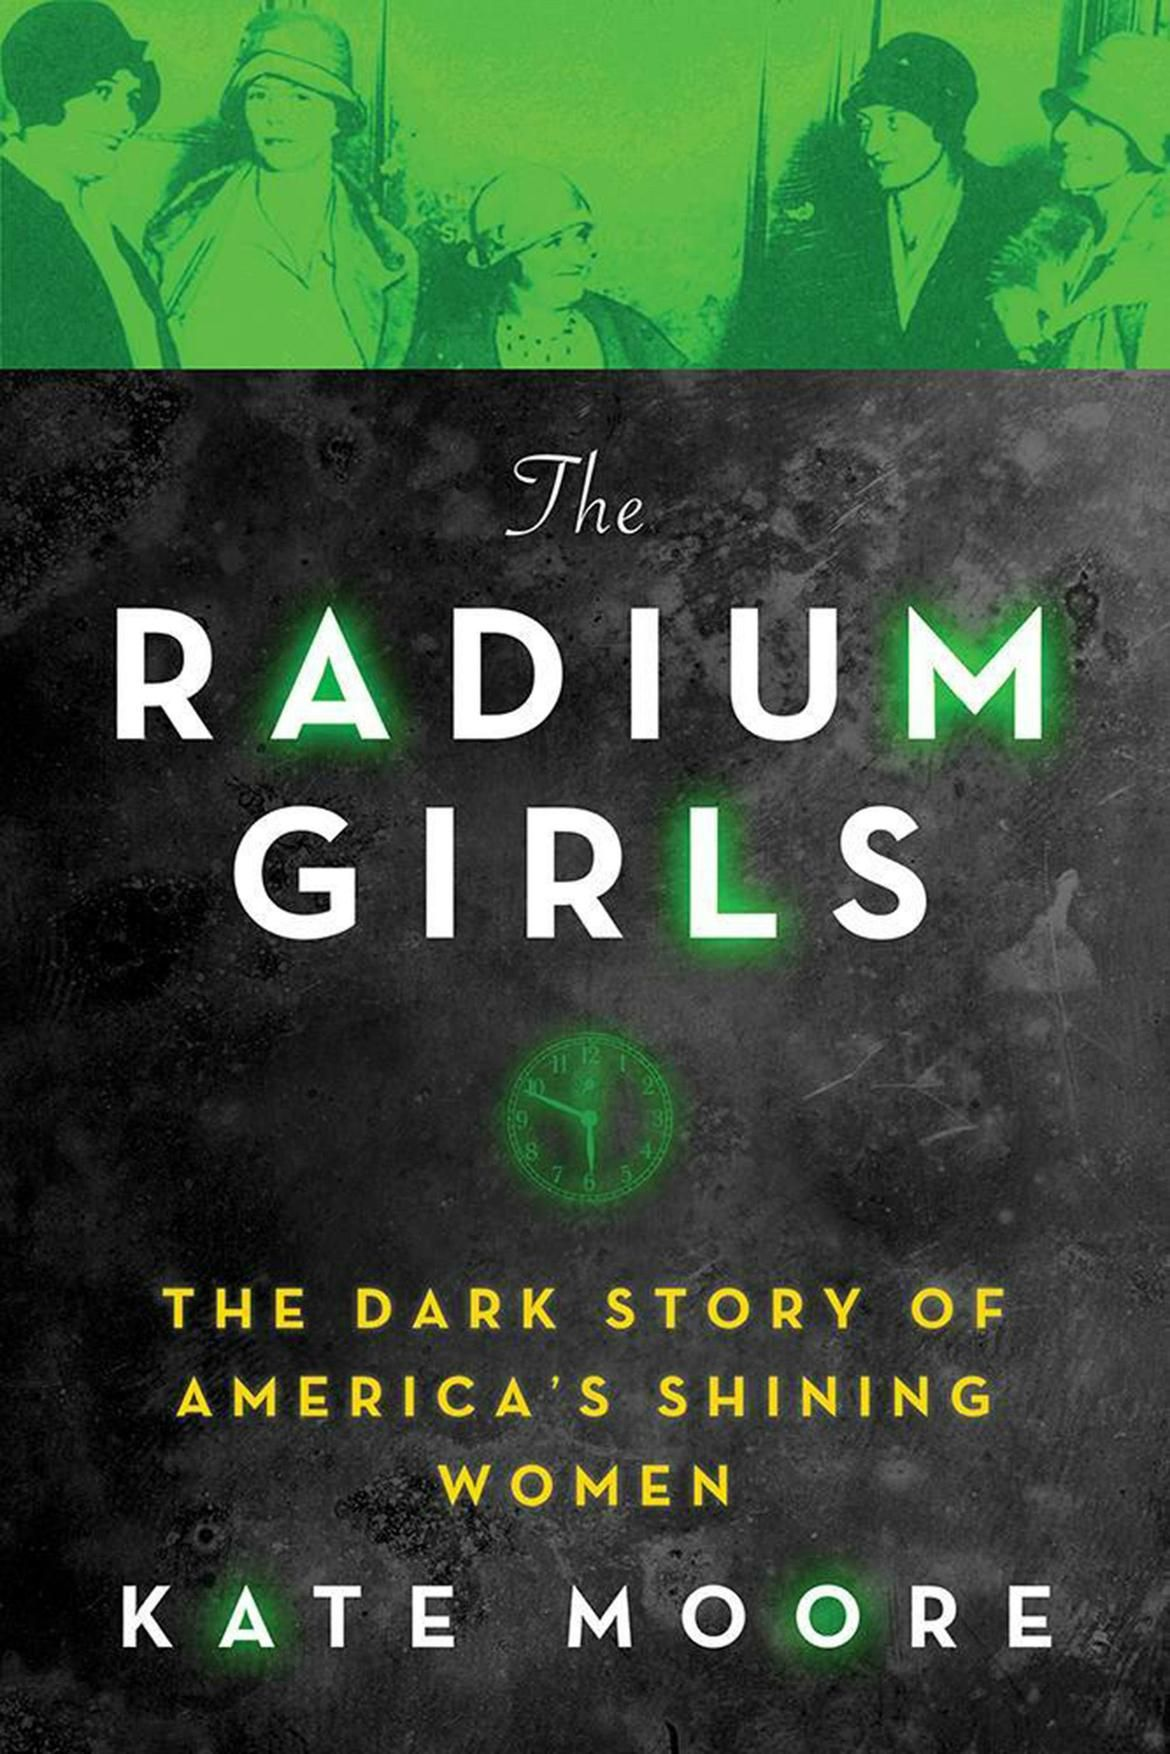 Download pdf the radium girls the dark story of americas shining download pdf the radium girls the dark story of americas shining women by kate moore fandeluxe Images